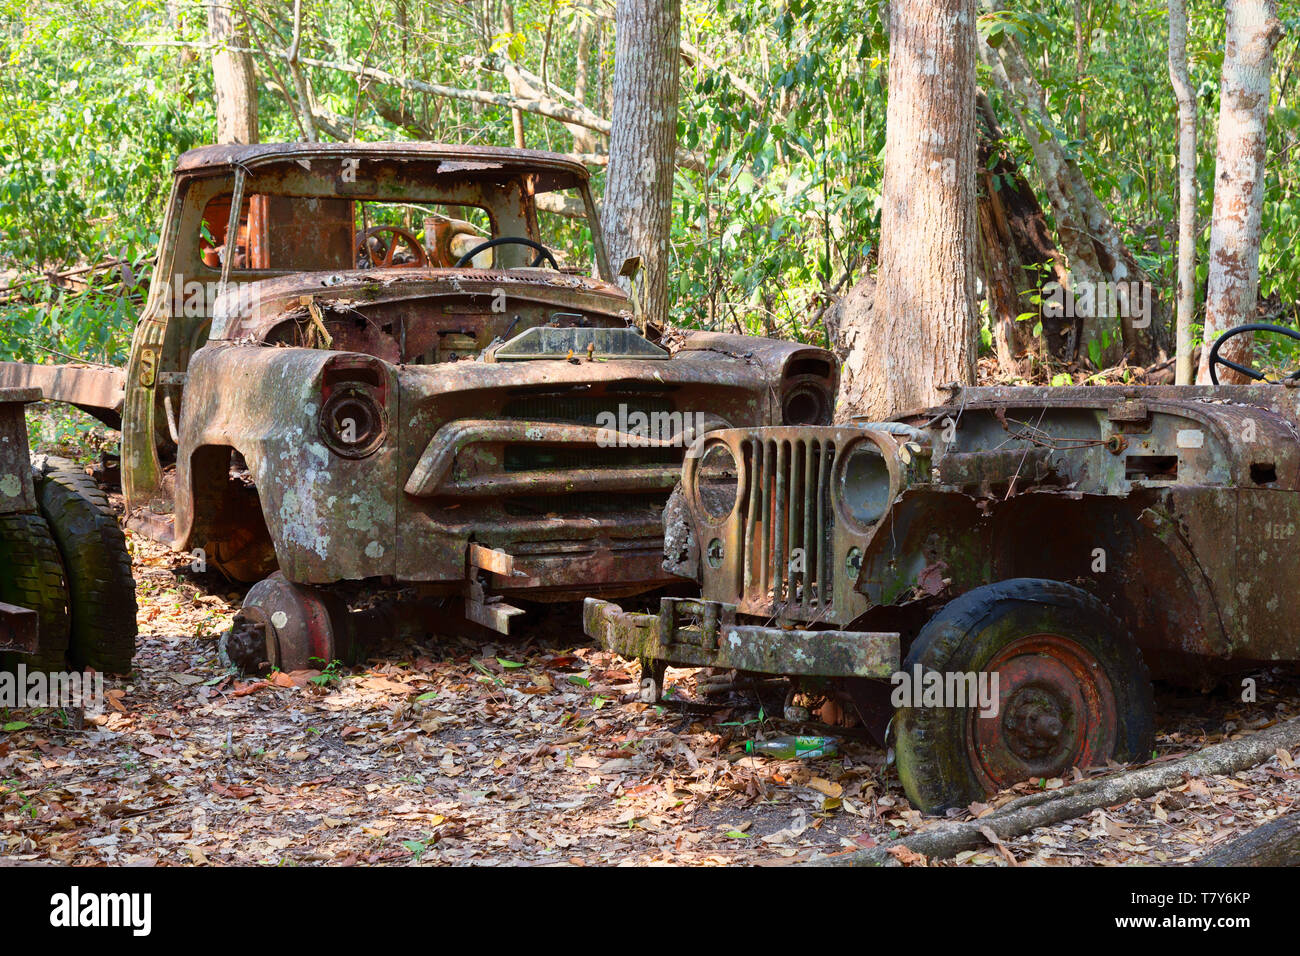 old-cars-rusting-and-dumped-in-the-forest-guatemala-central-america-concept-broken-down-pollution-T7Y6KP.jpg